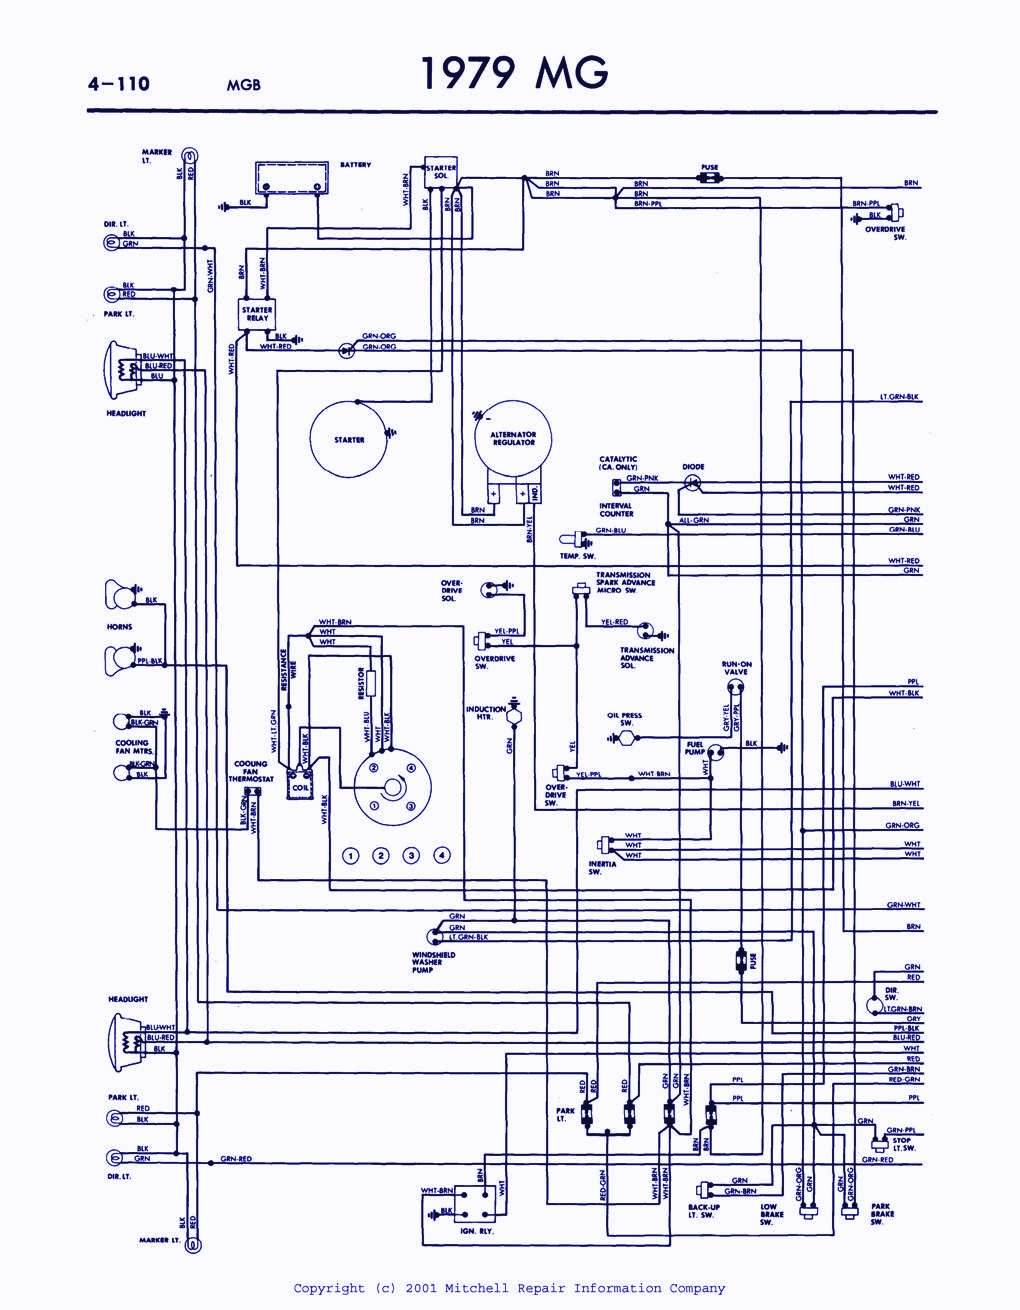 Mgb Wiring Harness Diagrams | Wiring Diagram on 1975 midget wiring-diagram, 1975 mgb value, 1975 mgb specs, 1975 lincoln wiring-diagram, 1975 triumph spitfire wiring-diagram, 1975 mgb starter wire connection,